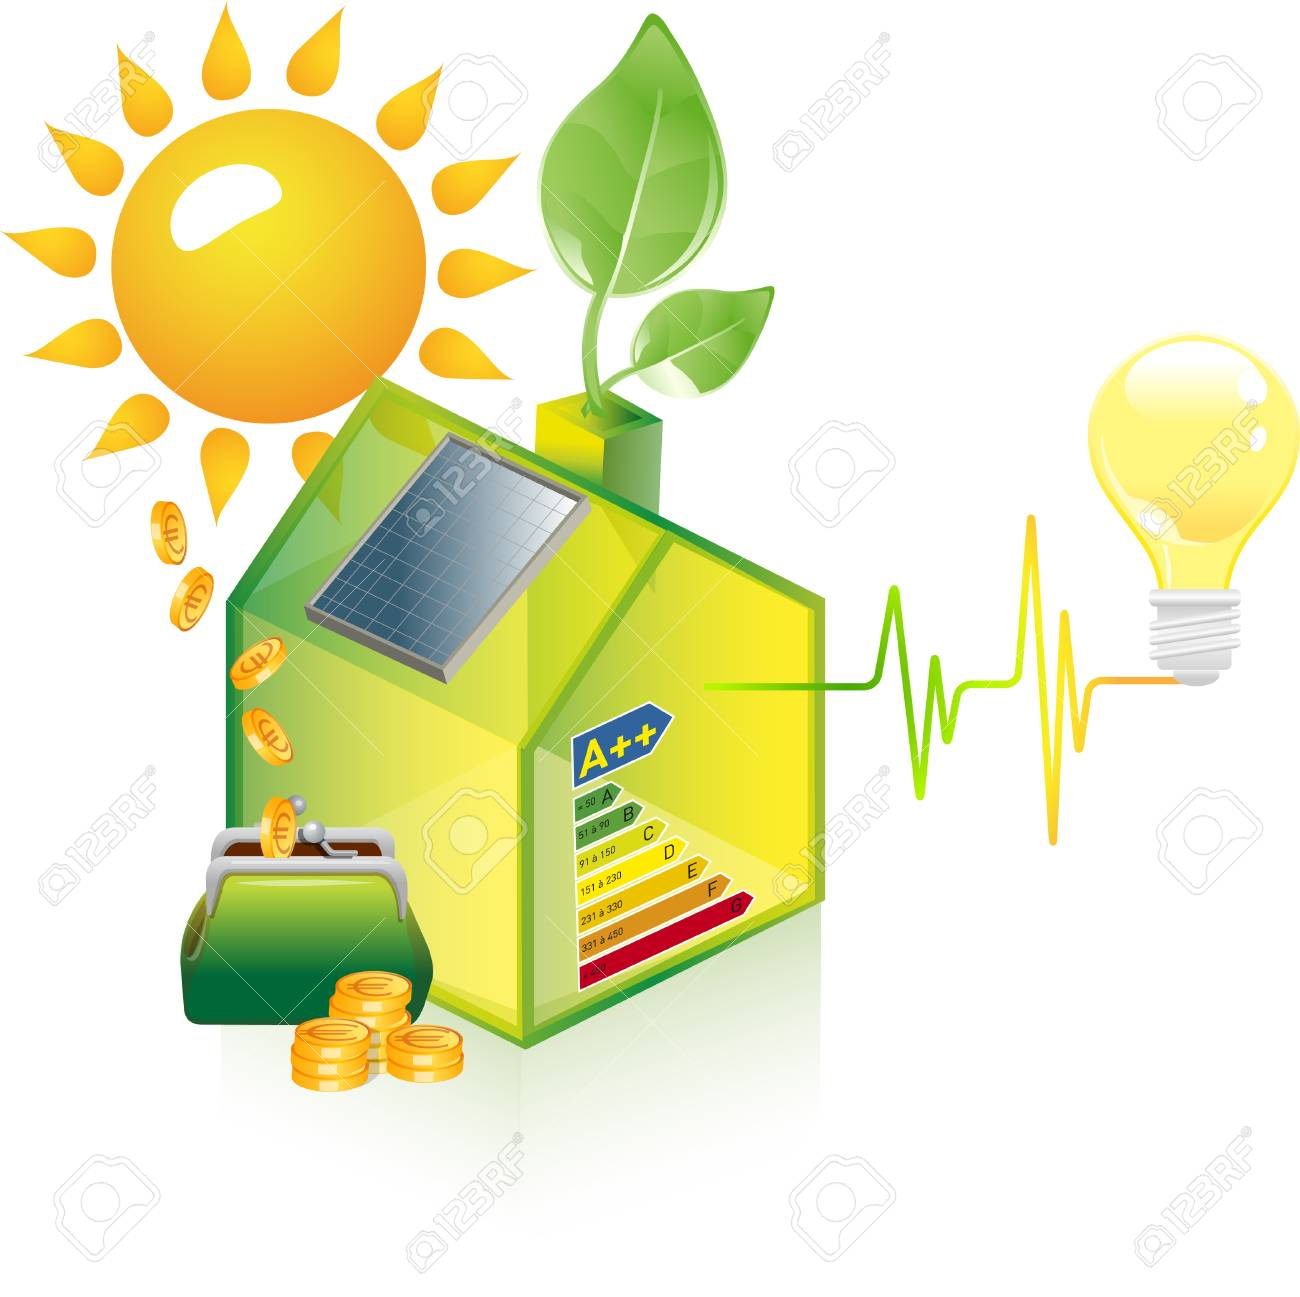 House with solar panel - 93921240